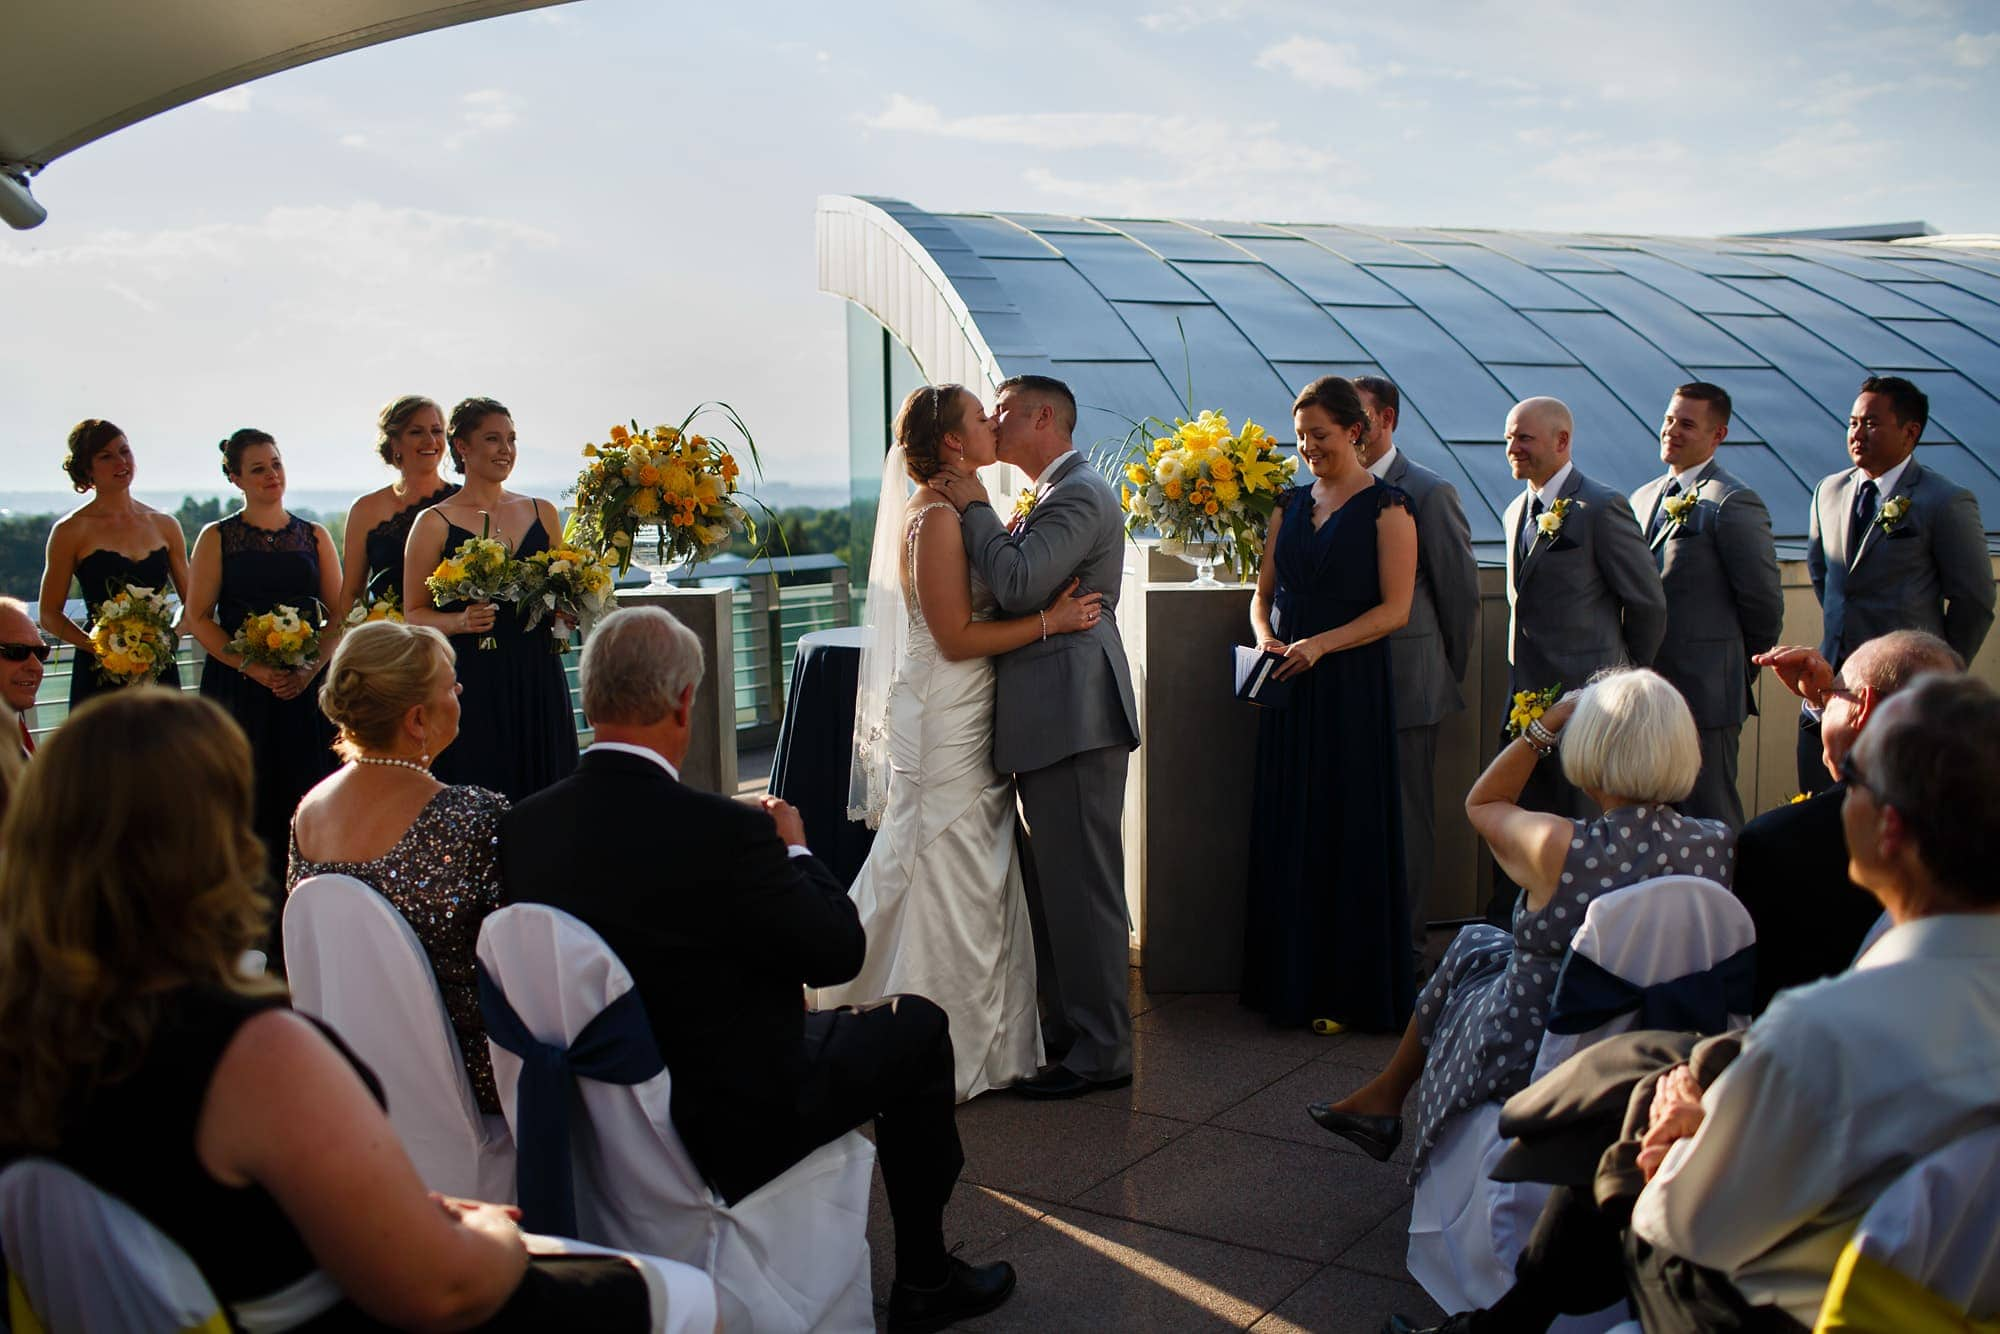 A couple share their first kiss together on the rooftop deck in front of friends and family at the Denver Museum of Nature and Science